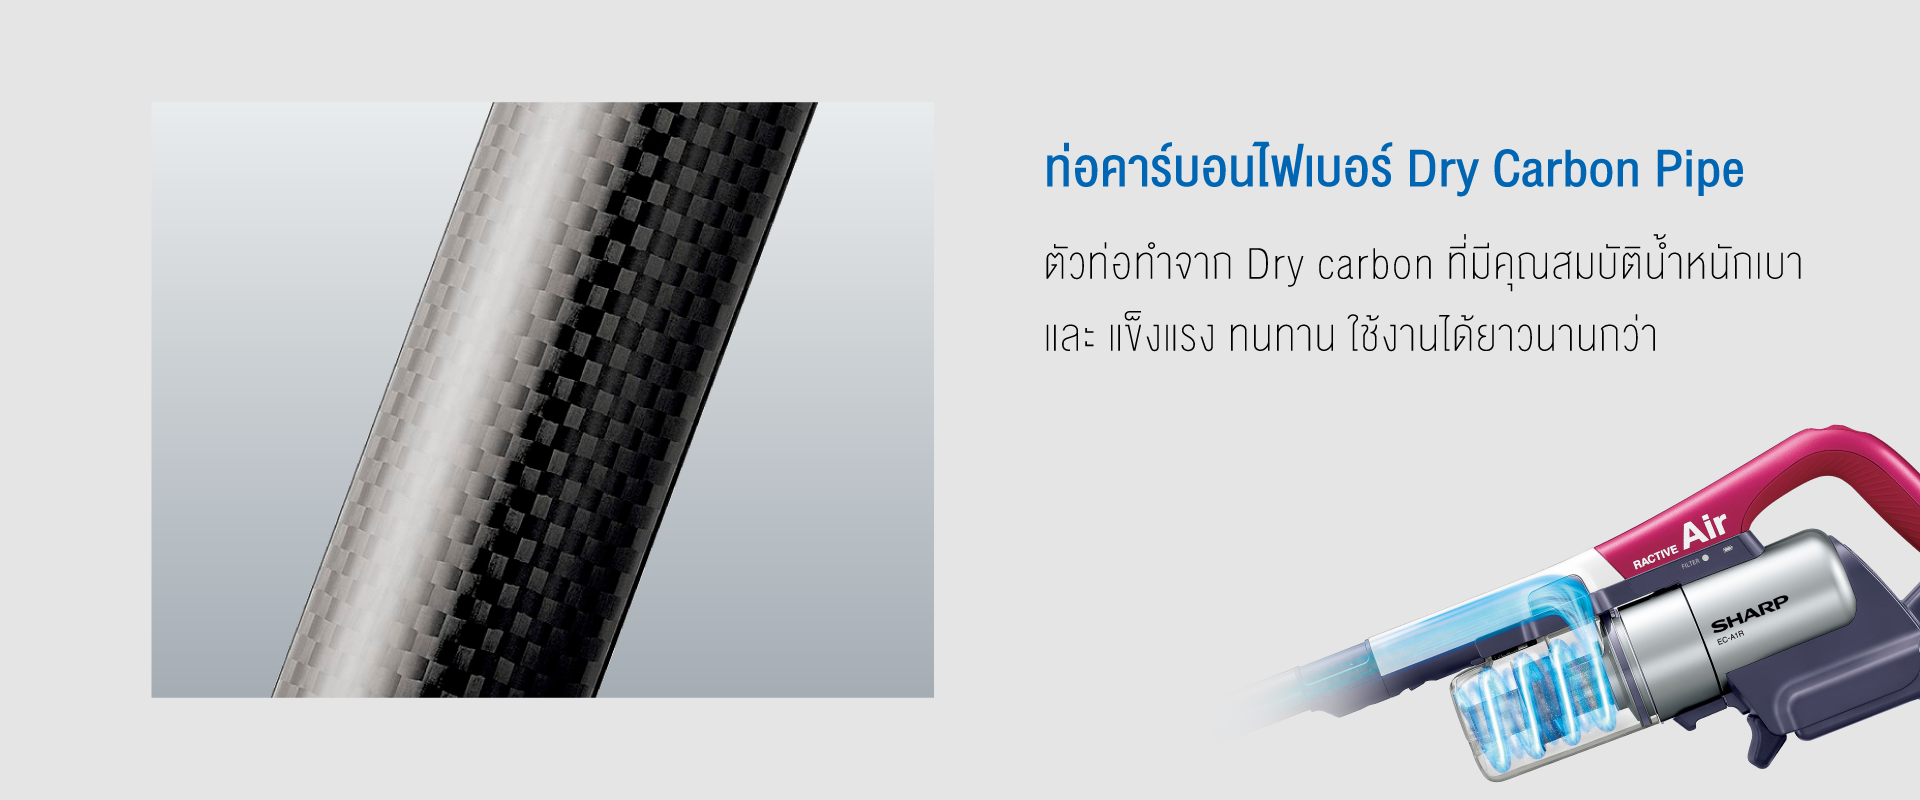 VC--RactiveAir---website-spec-patern---1920x800-Dry-Carbon-Pipe.png